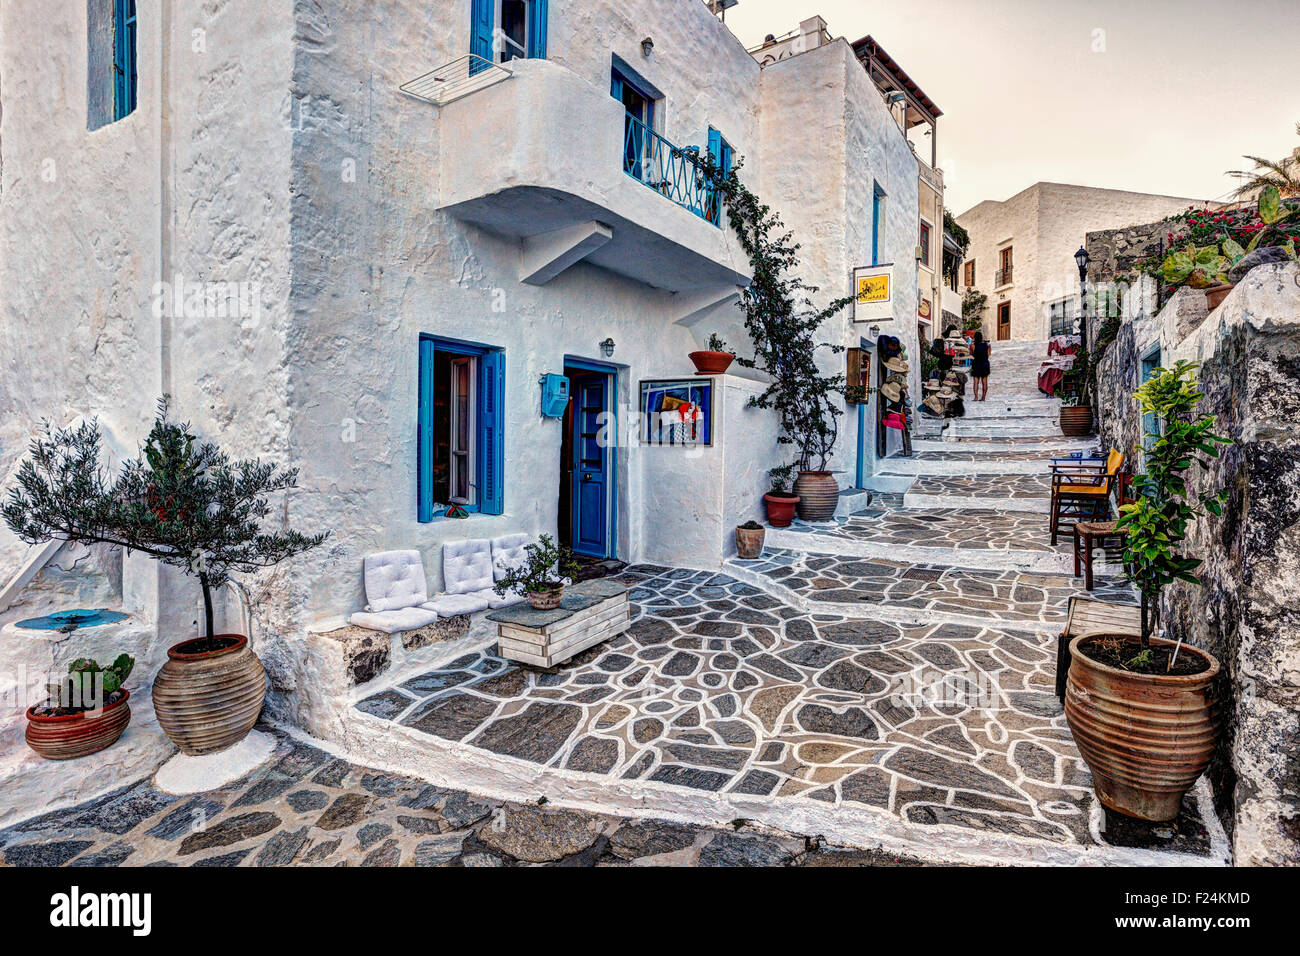 The traditional village of Plaka in Milos, Greece - Stock Image